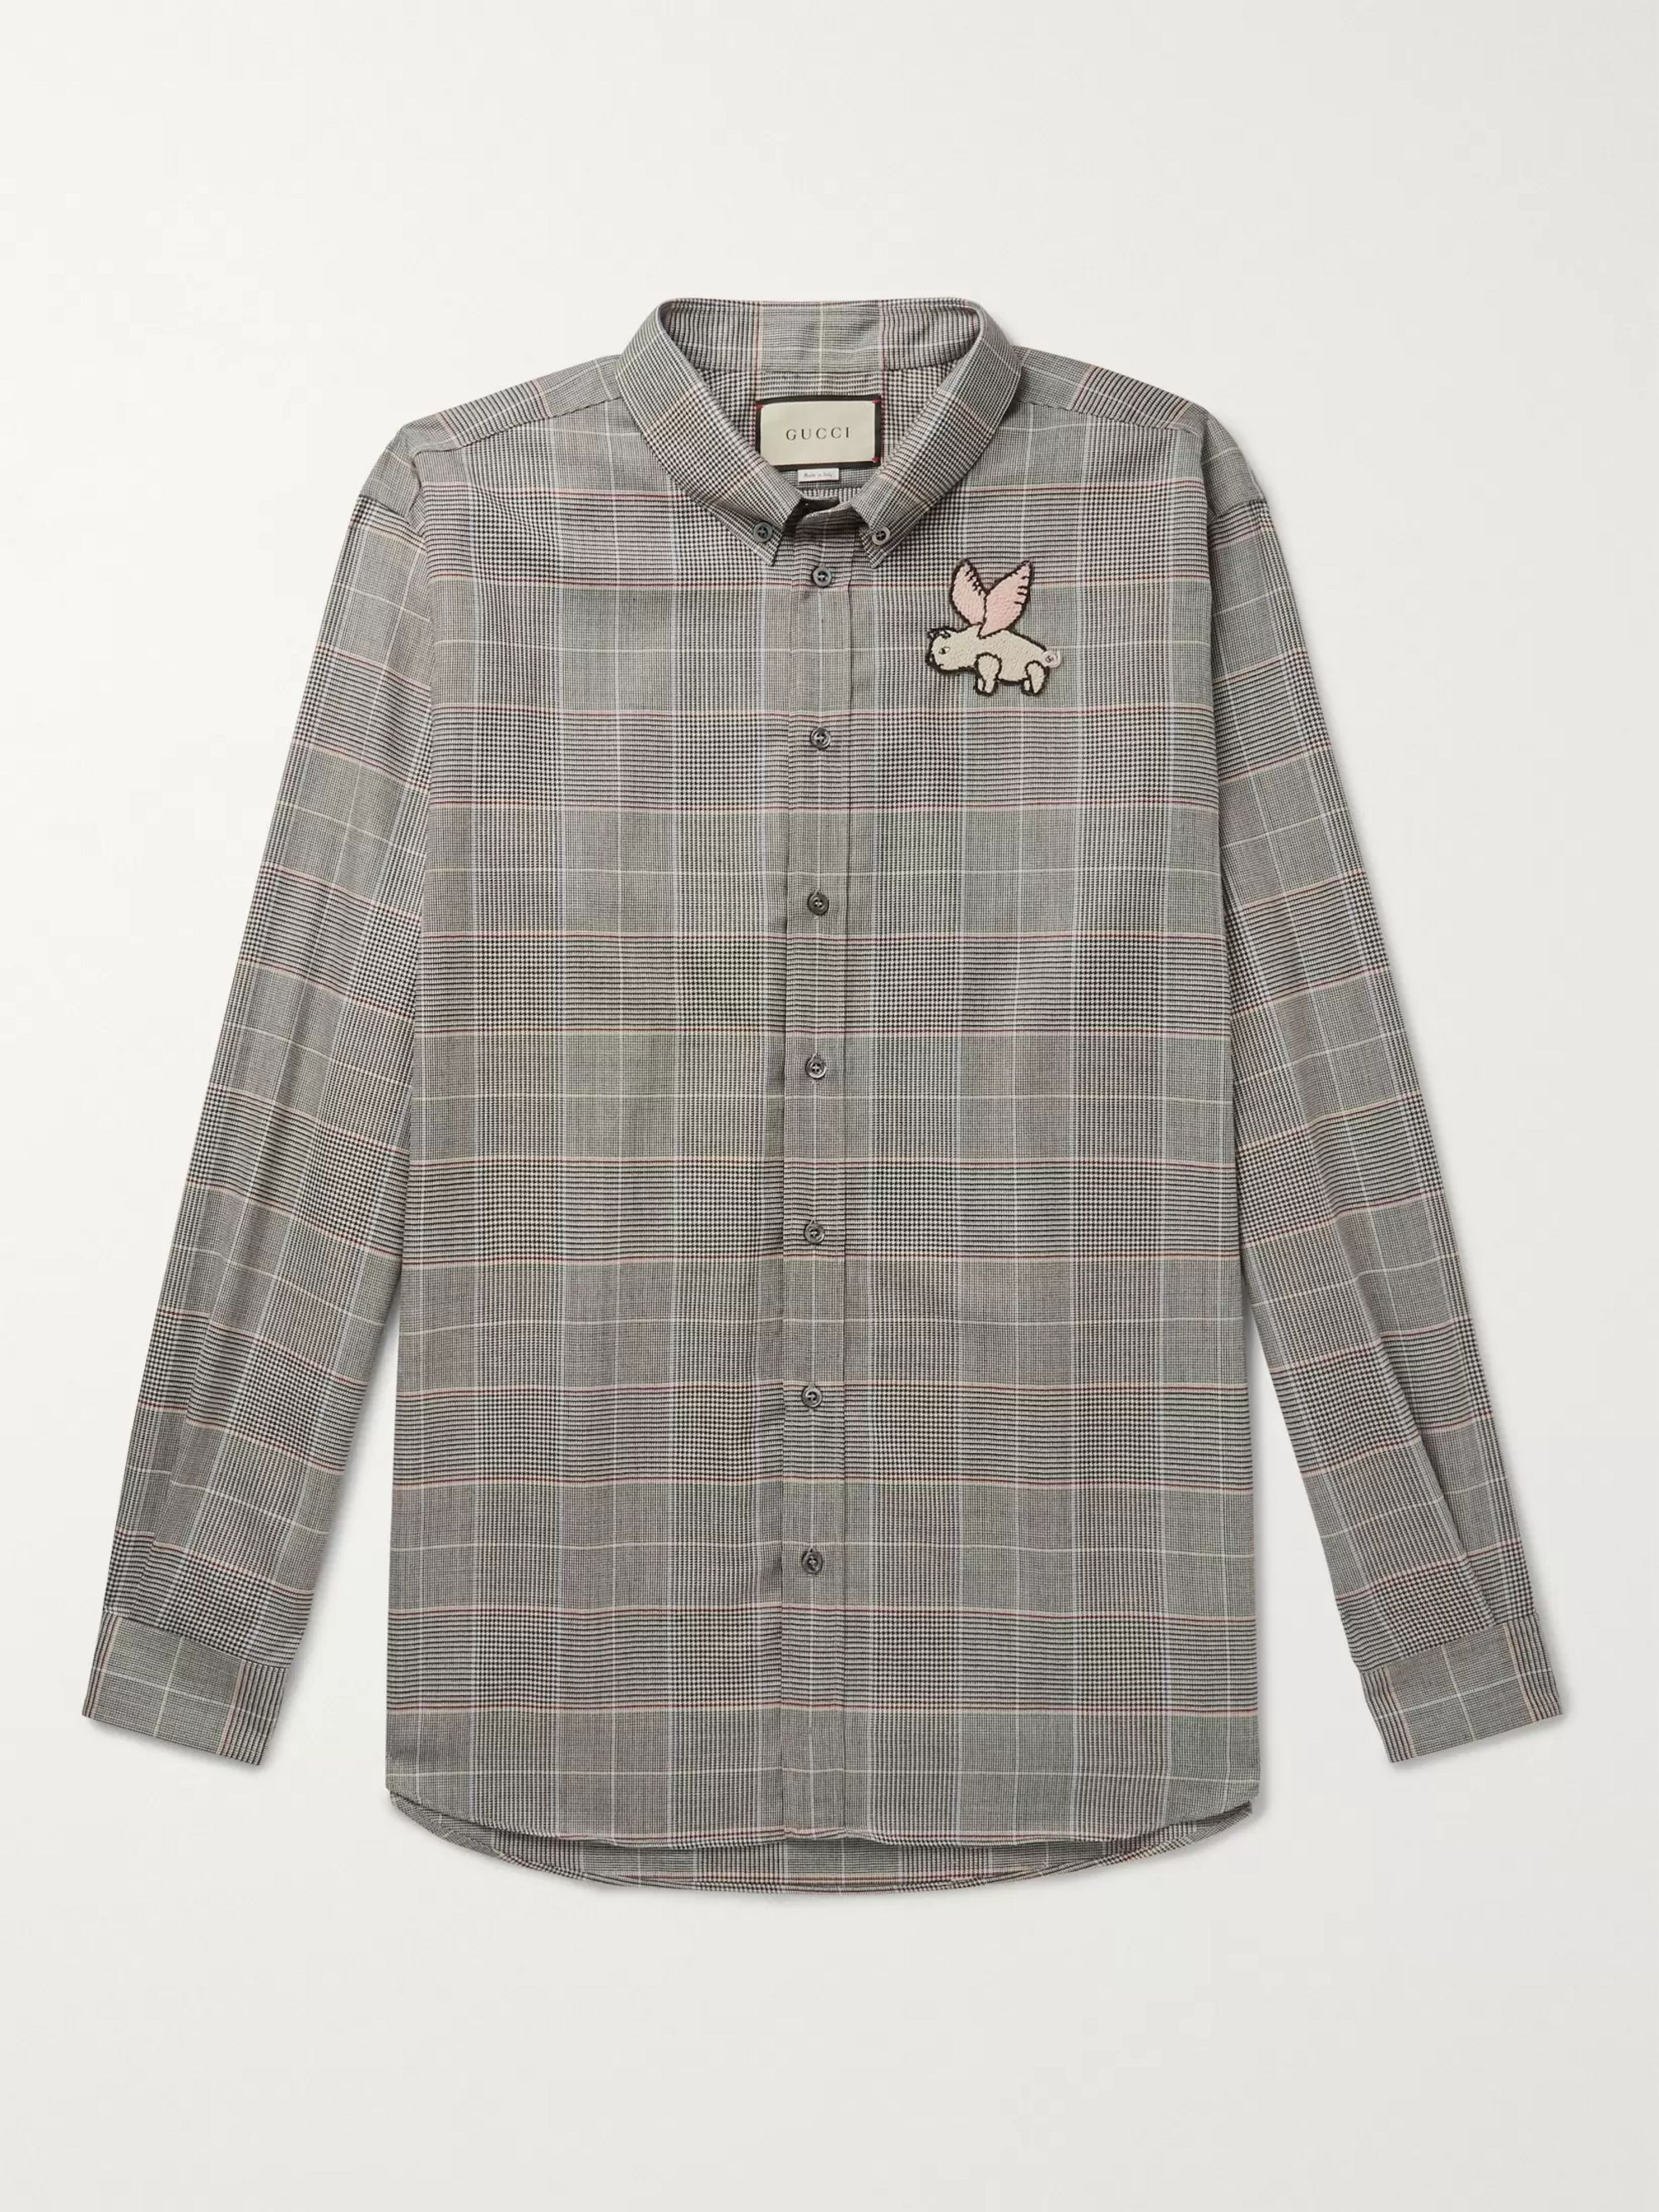 Gucci Oversized Button-Down Collar Appliquéd Prince Of Wales Checked Wool Shirt